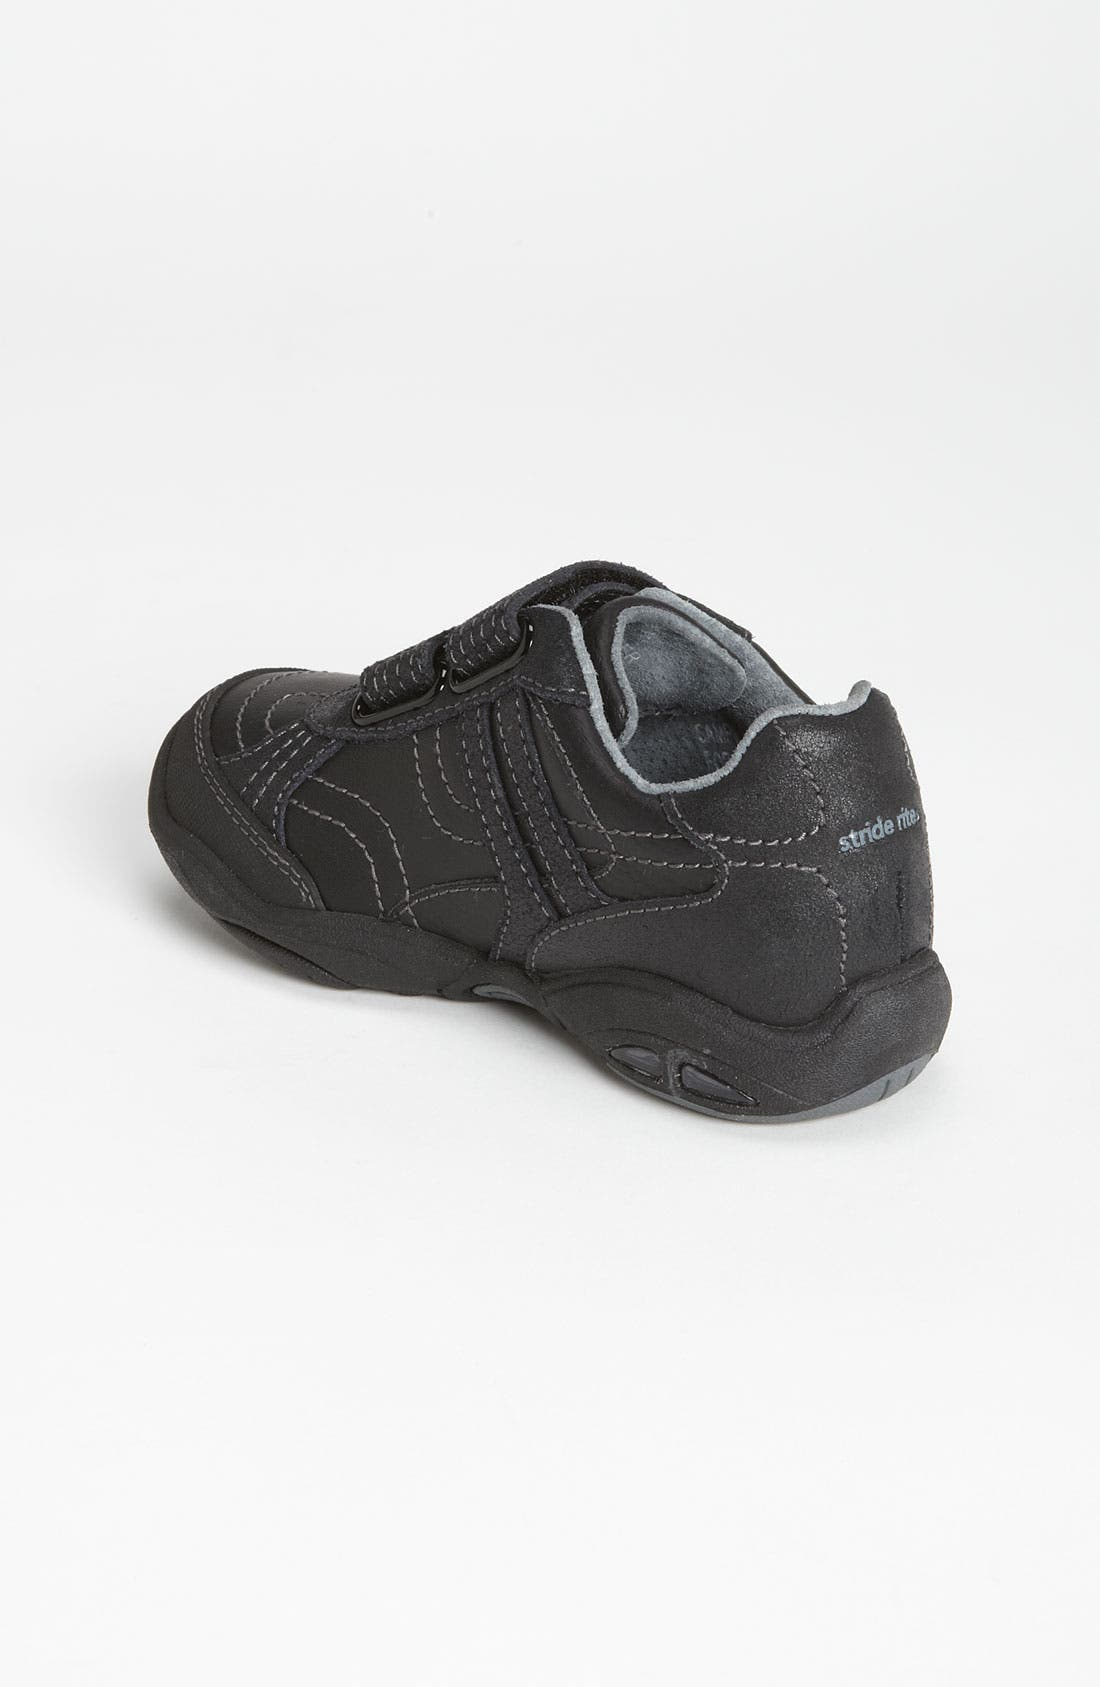 Alternate Image 2  - Stride Rite 'Baxter' Sneaker (Toddler & Little Kid)